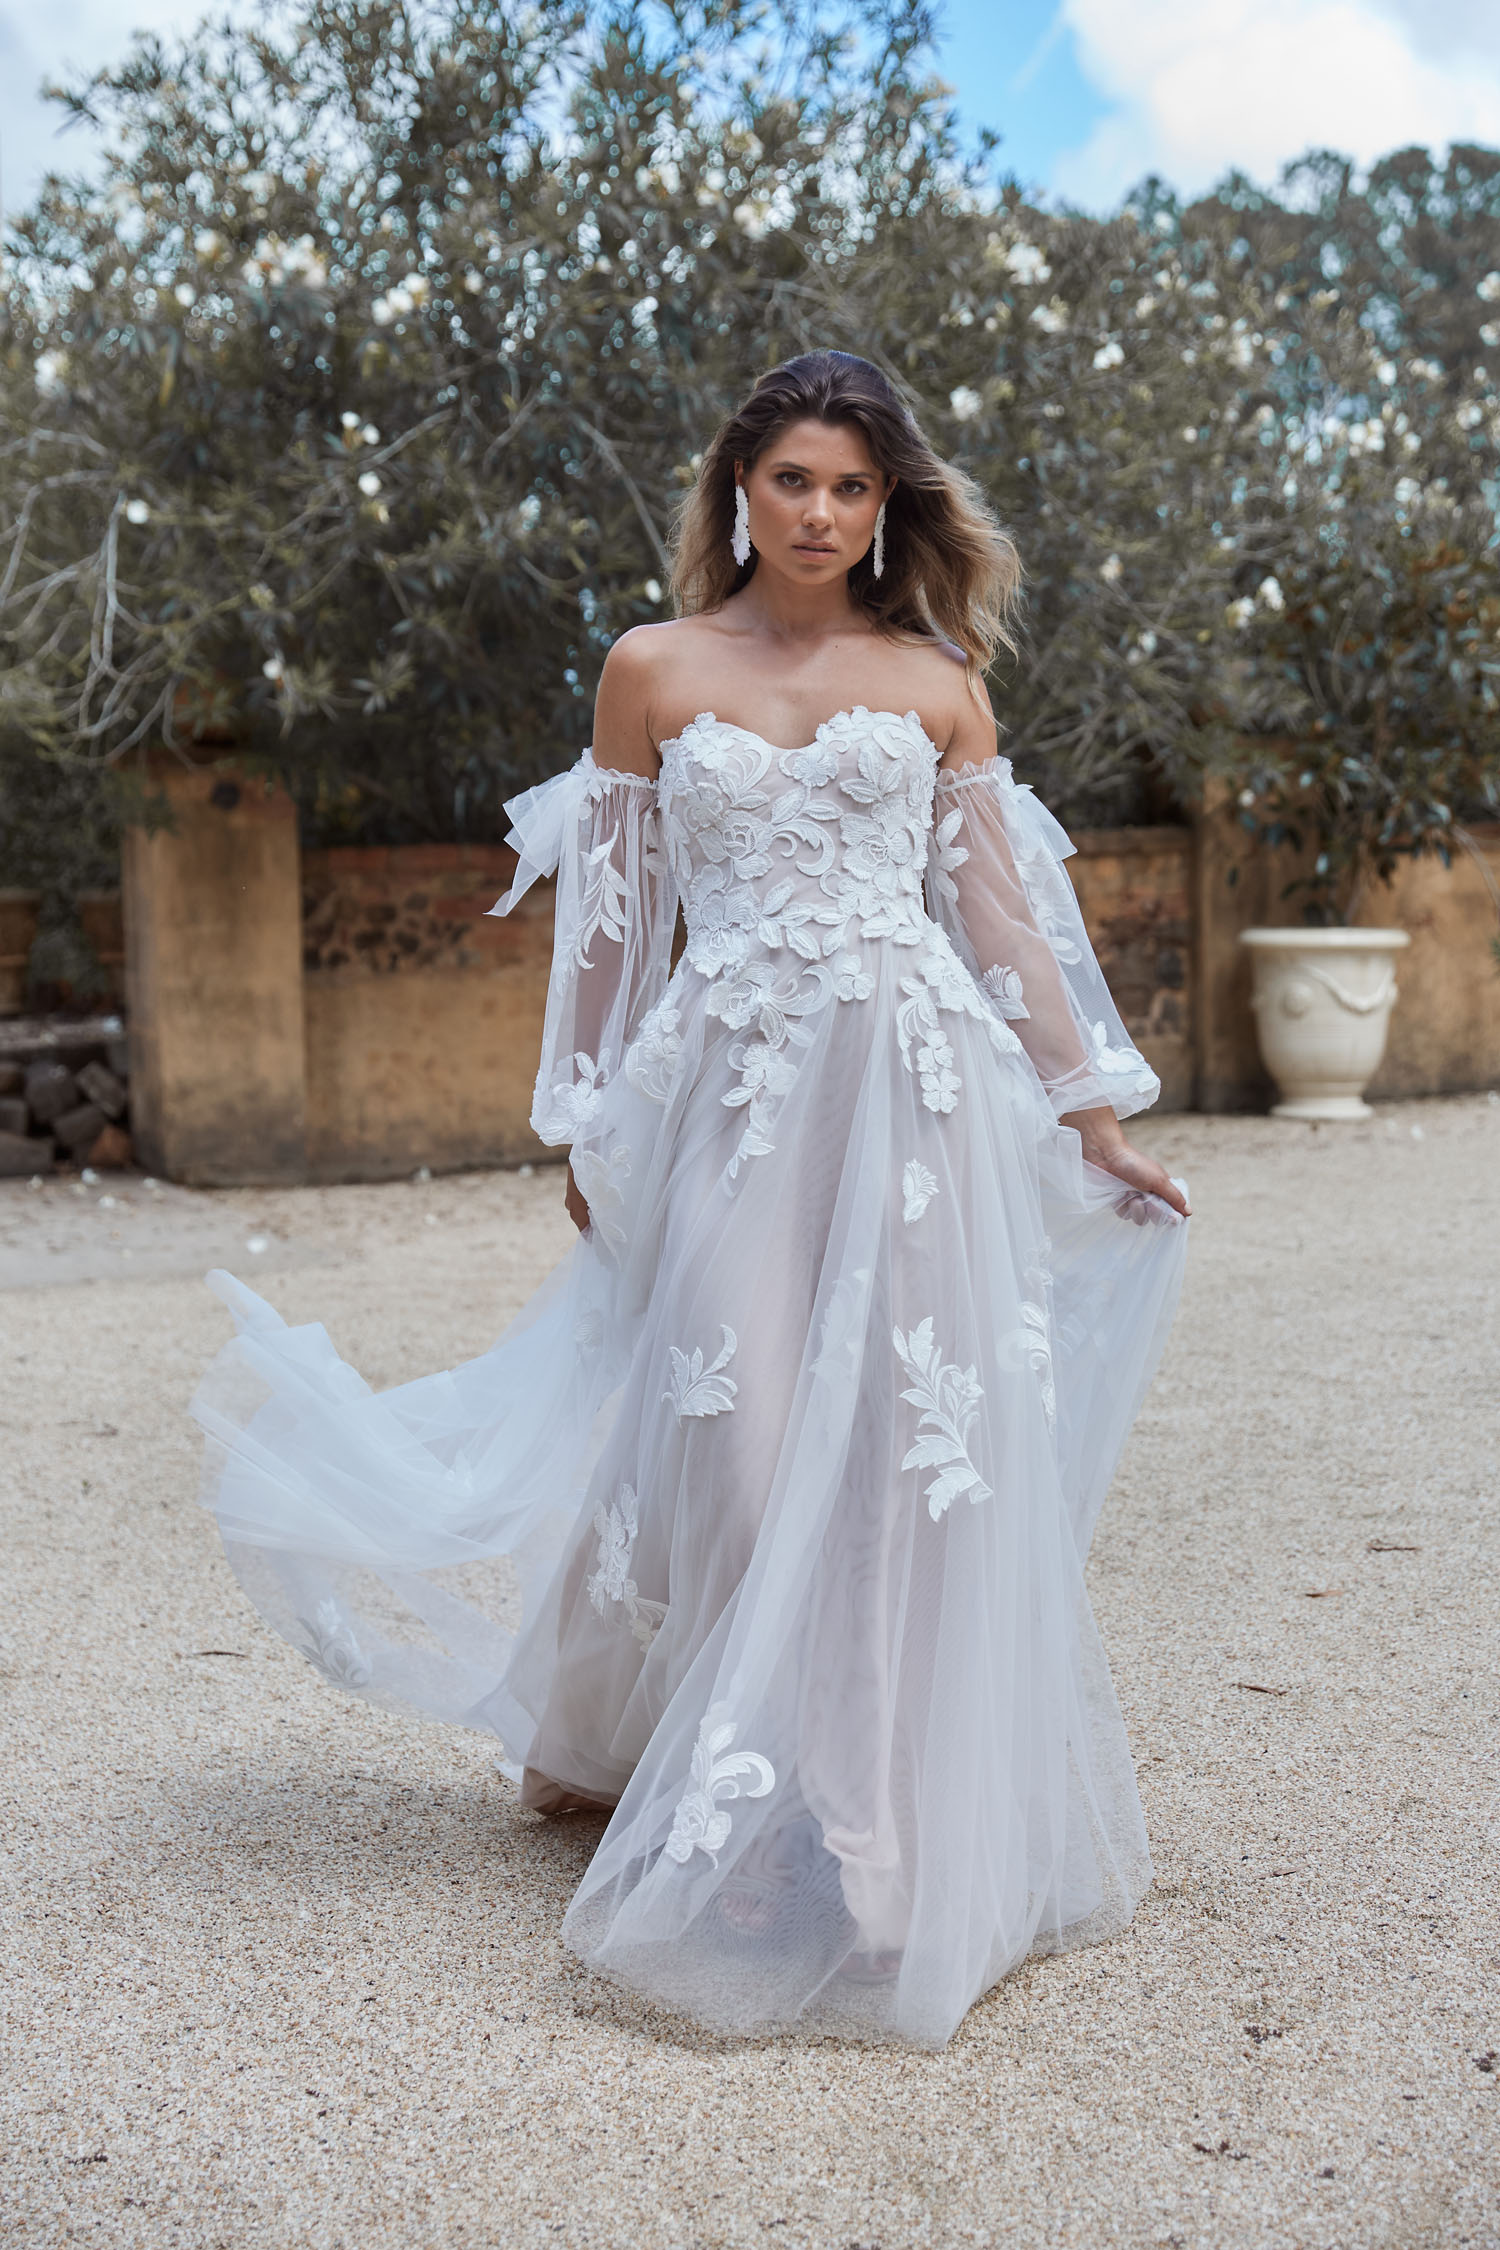 JOLIE_EY273_SWEETHEART STRAPLESS ALINE LACE WEDDING DRESS WITH DETACHABLE OFF THE SHOULDER FULL LENGTH SLEEVES_EVIE YOUNG BRIDAL 360